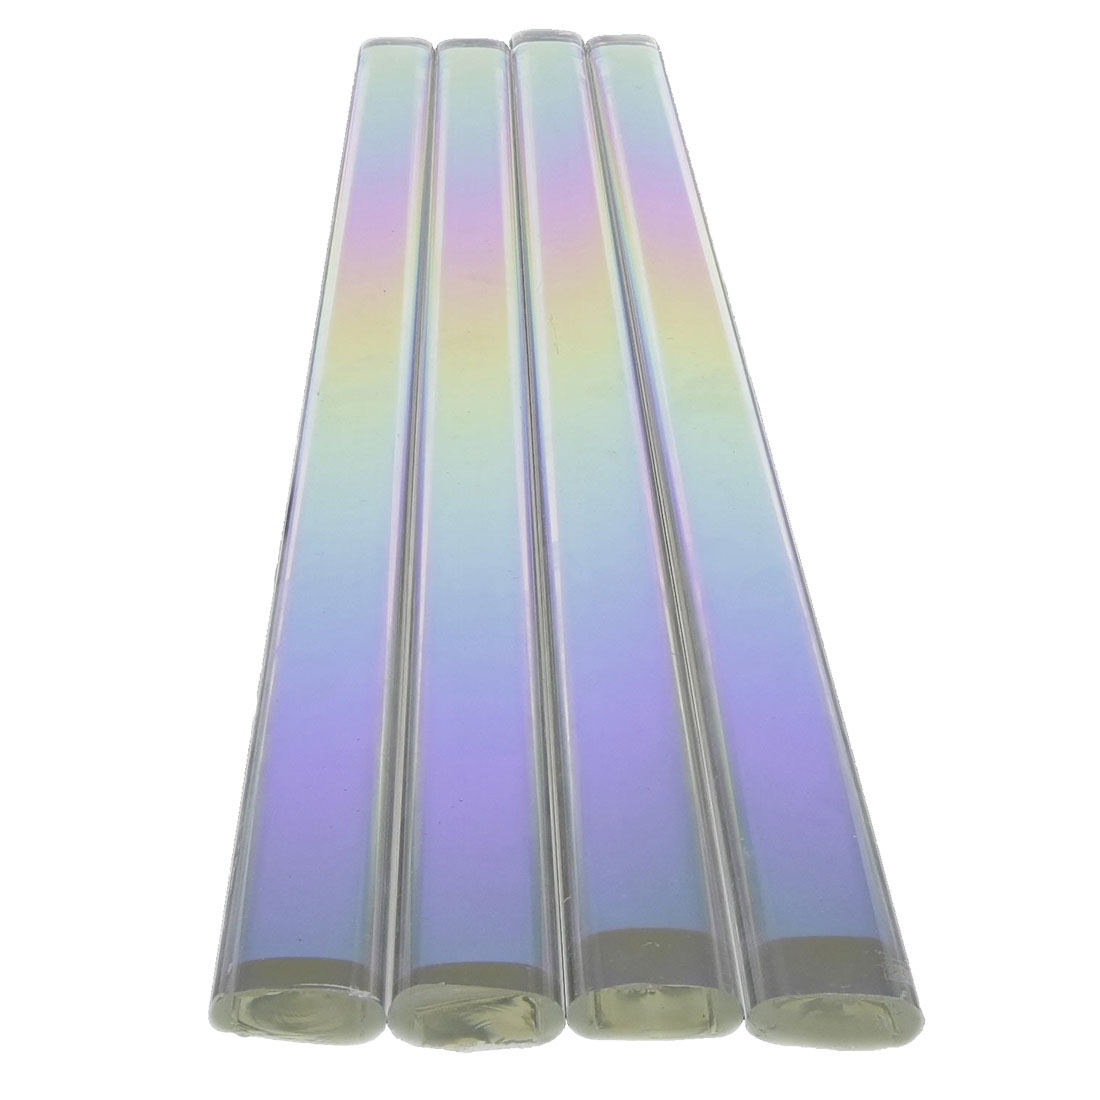 18mm Dichroic Coated Clear Flat Rod